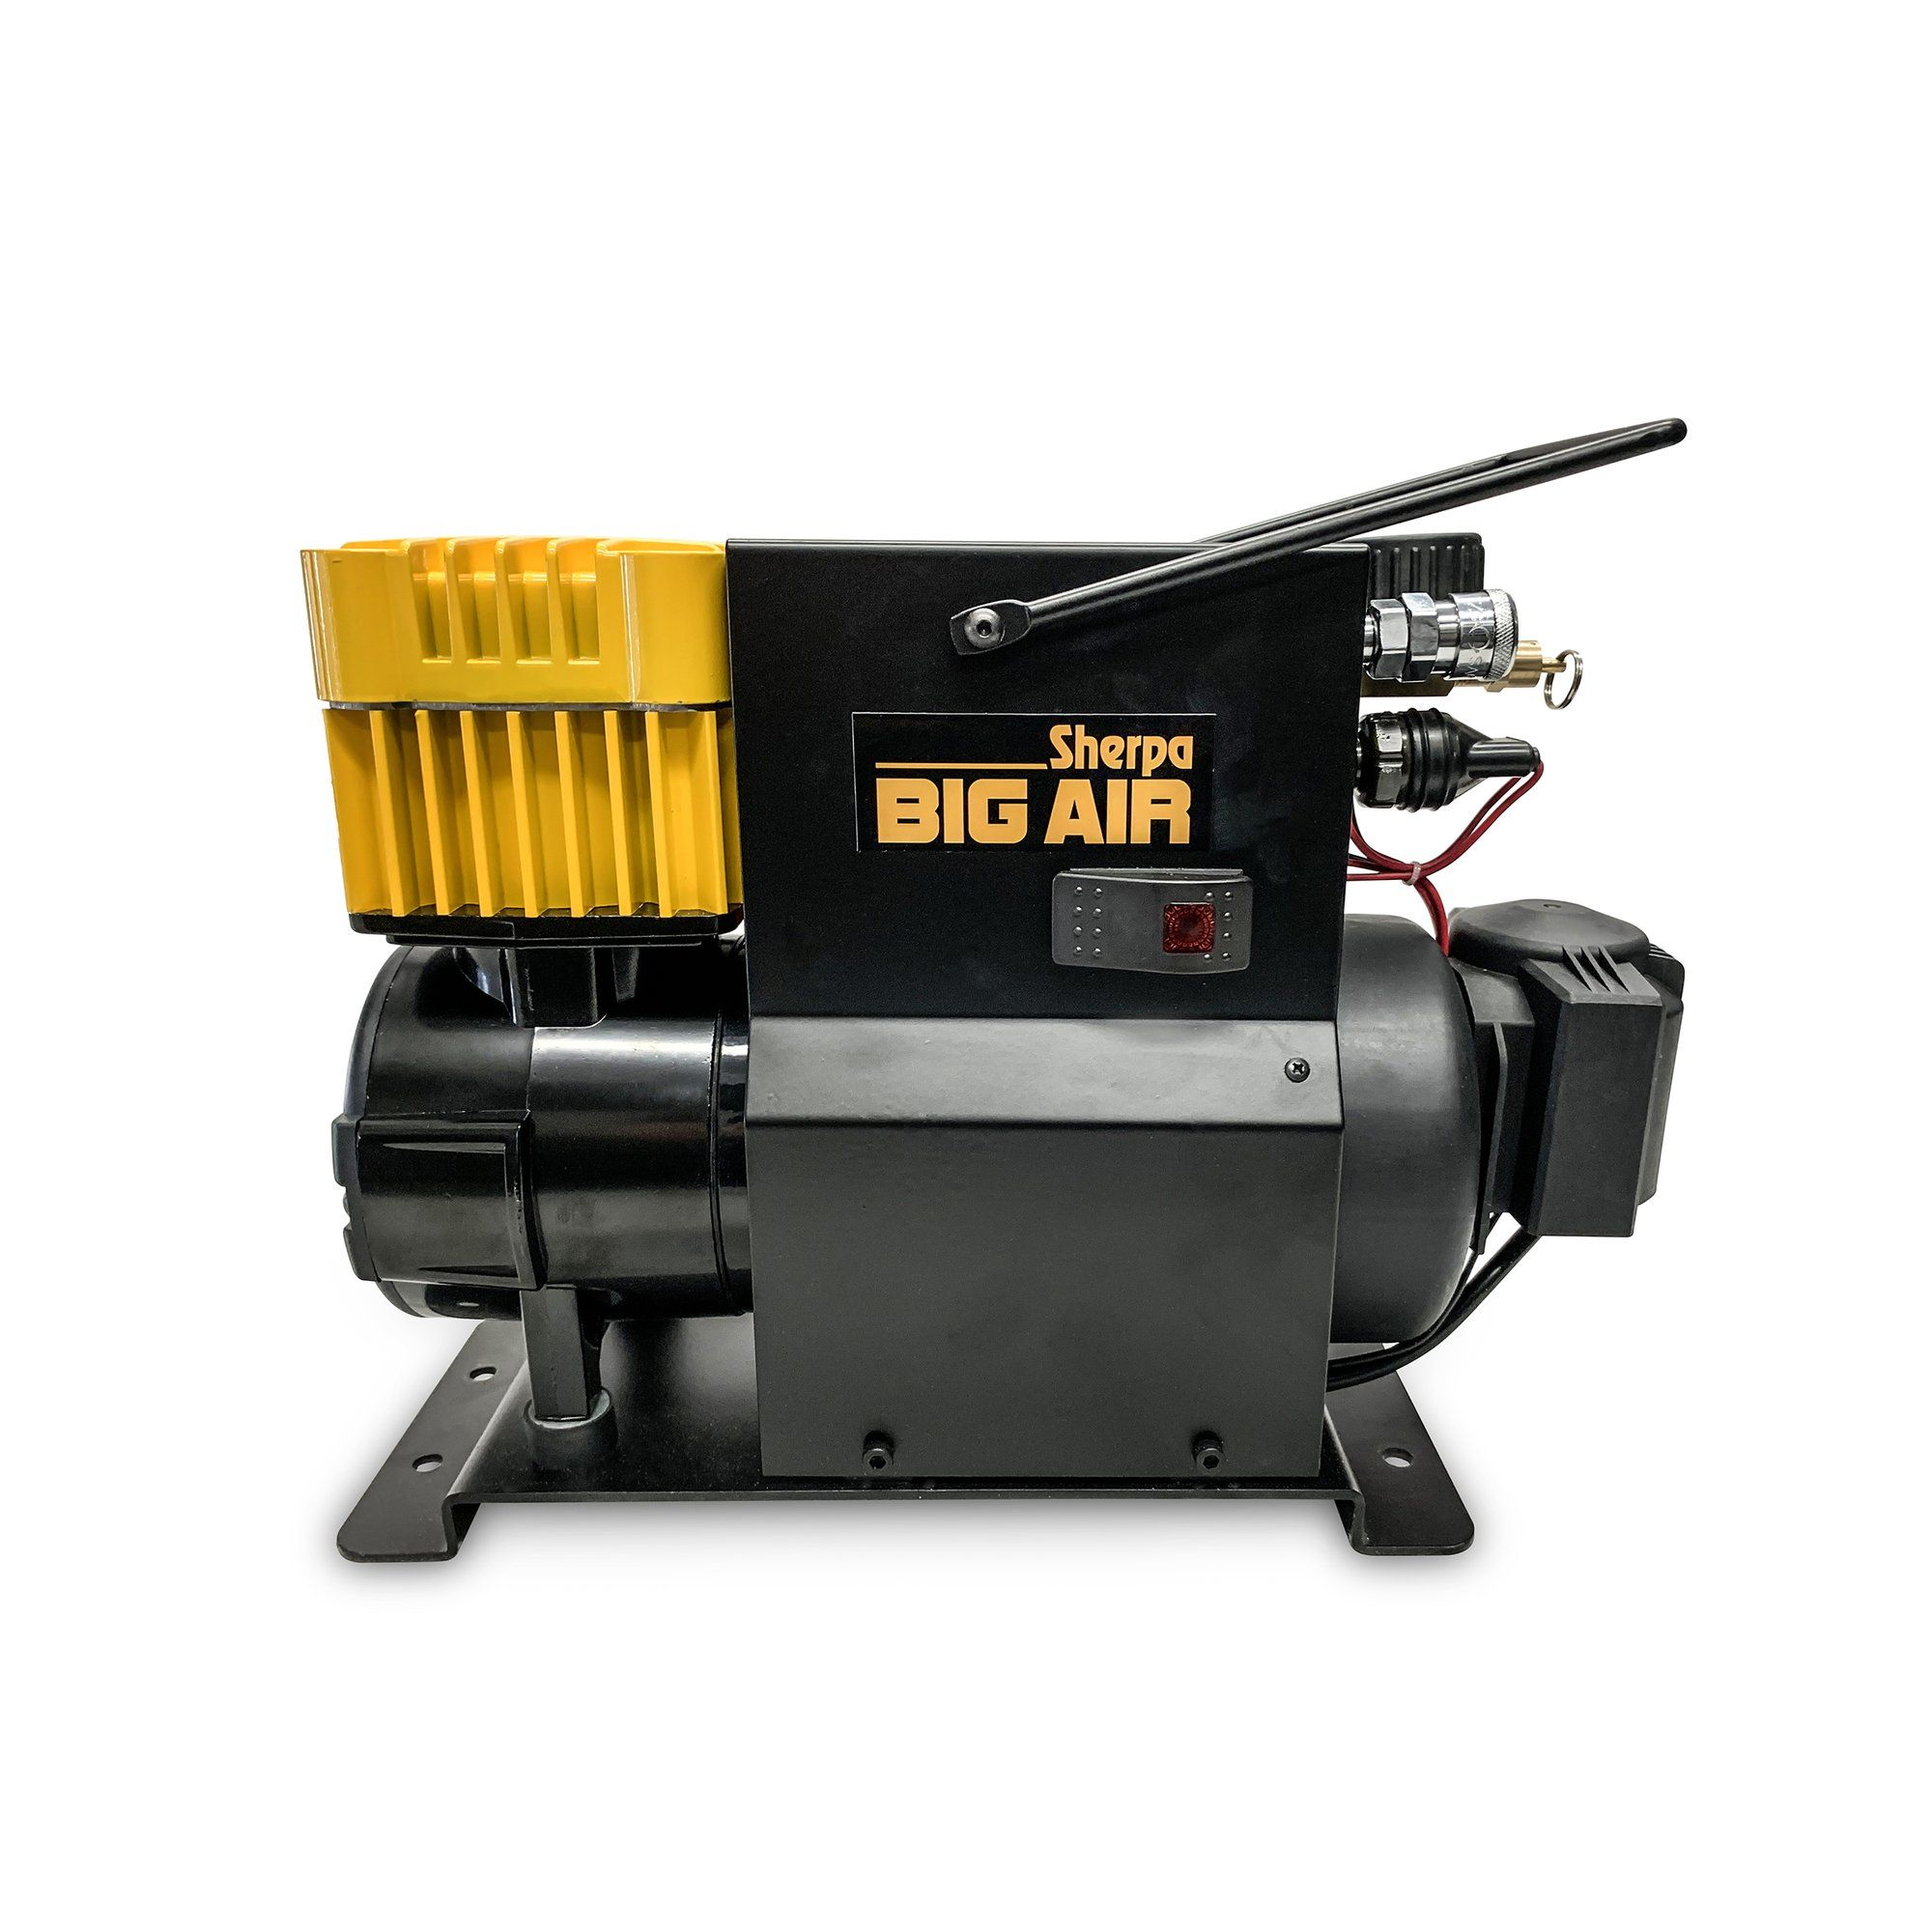 Sherpa DC Air Compressor (BIGAIR) Air compressor, Air